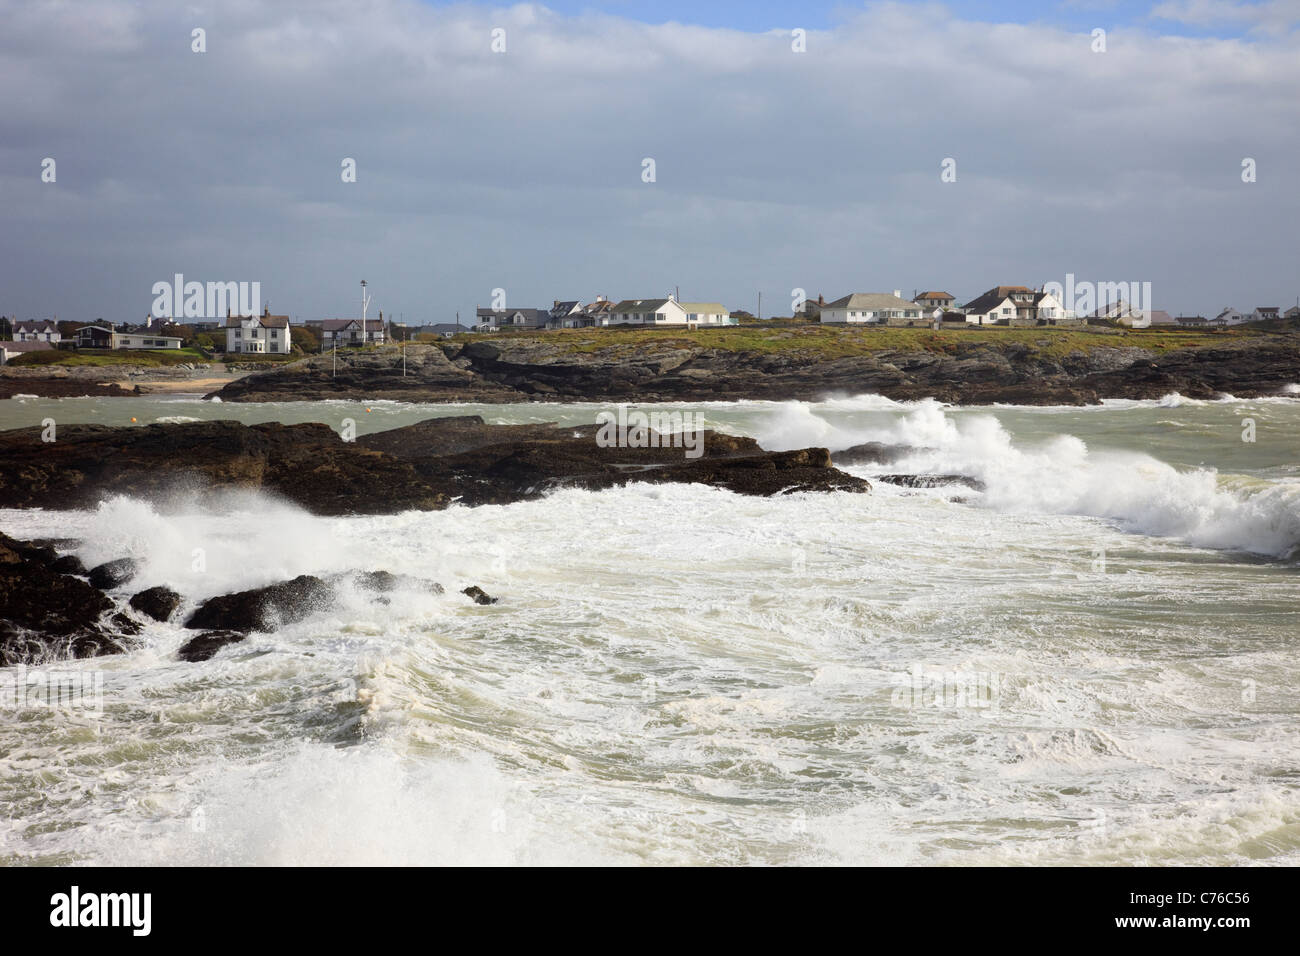 Trearddur Bay, Anglesey, North Wales, UK. View across rough stormy sea with waves crashing on rocks on exposed west - Stock Image